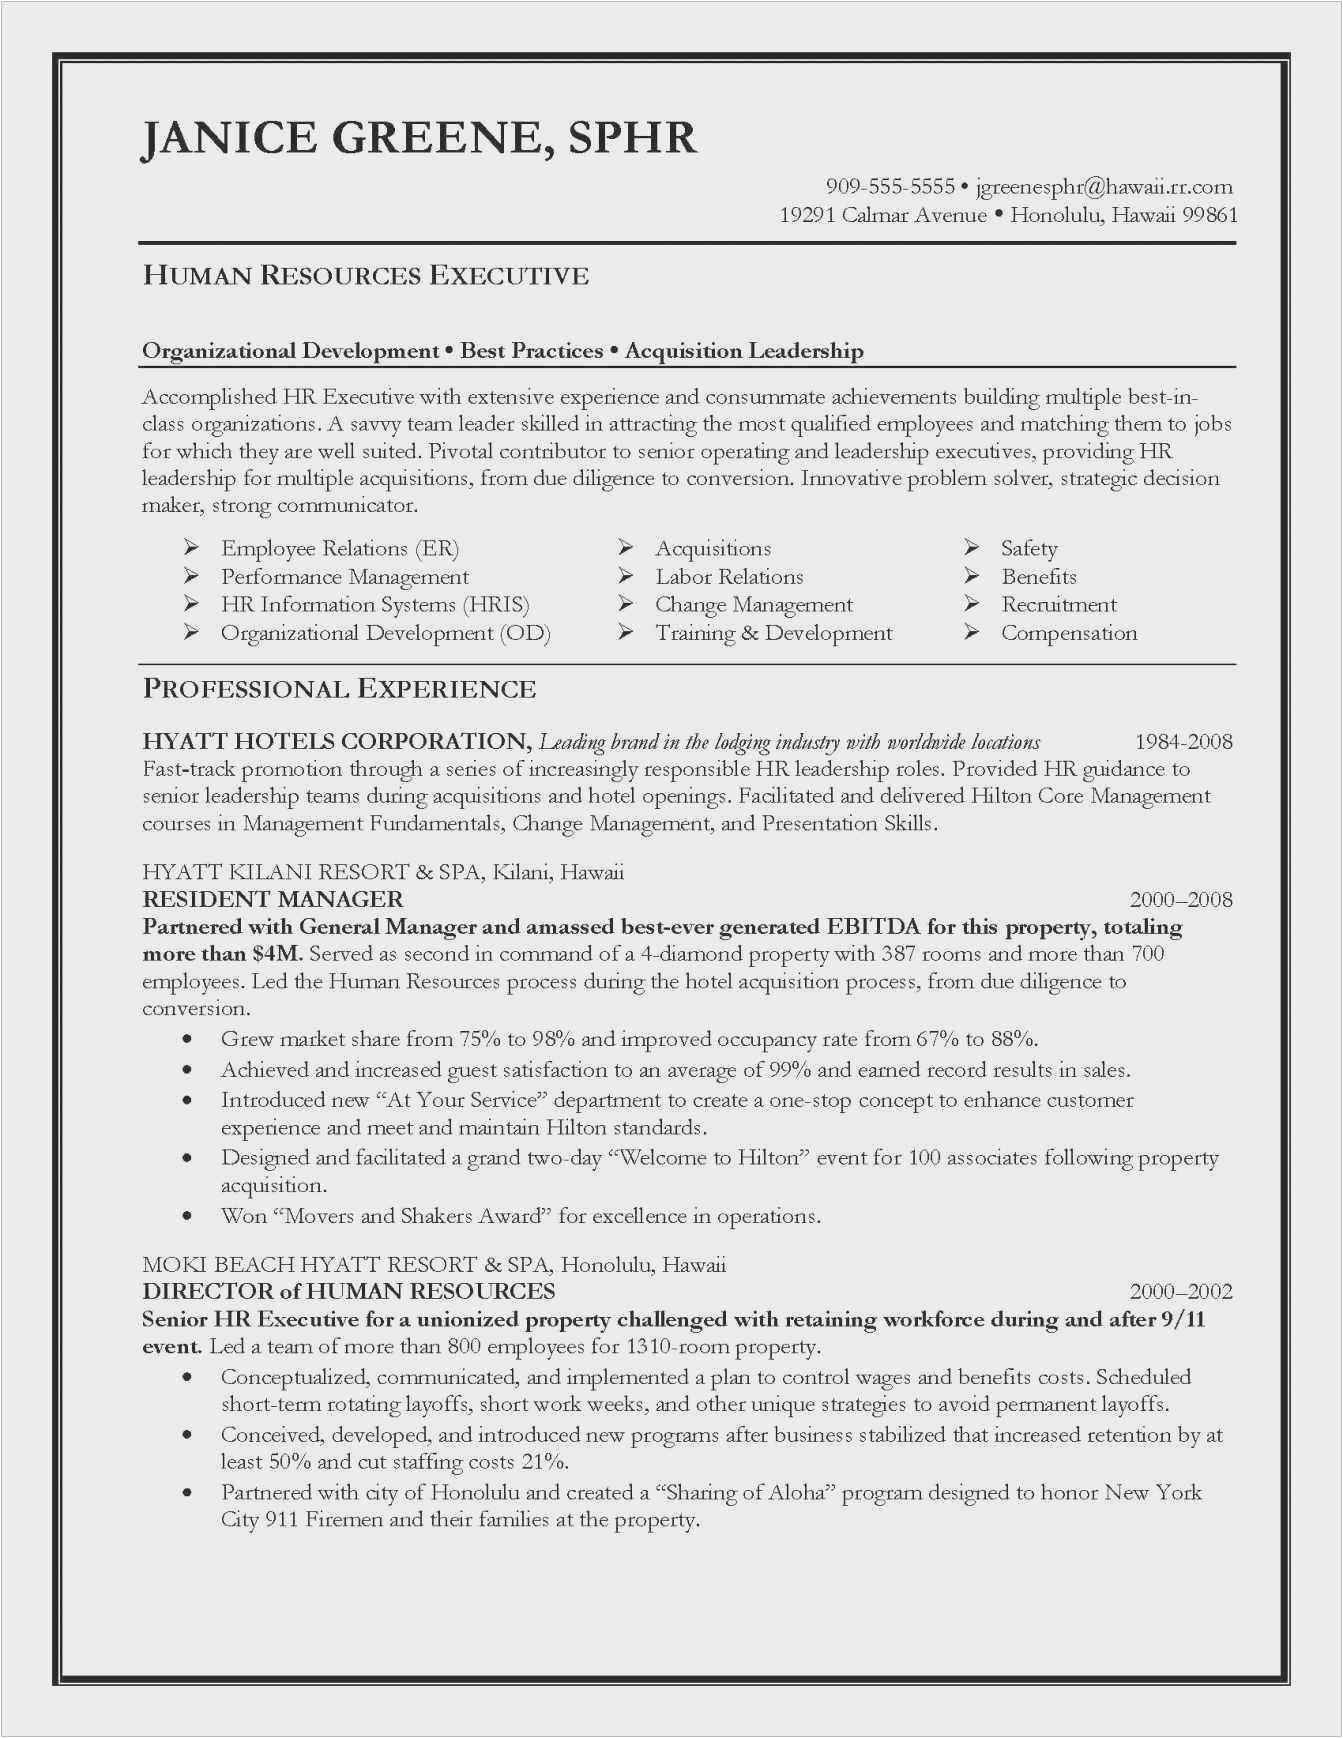 Sample Phrases for Skills On Resume Free Collection 52 Career Builder Resume Examples